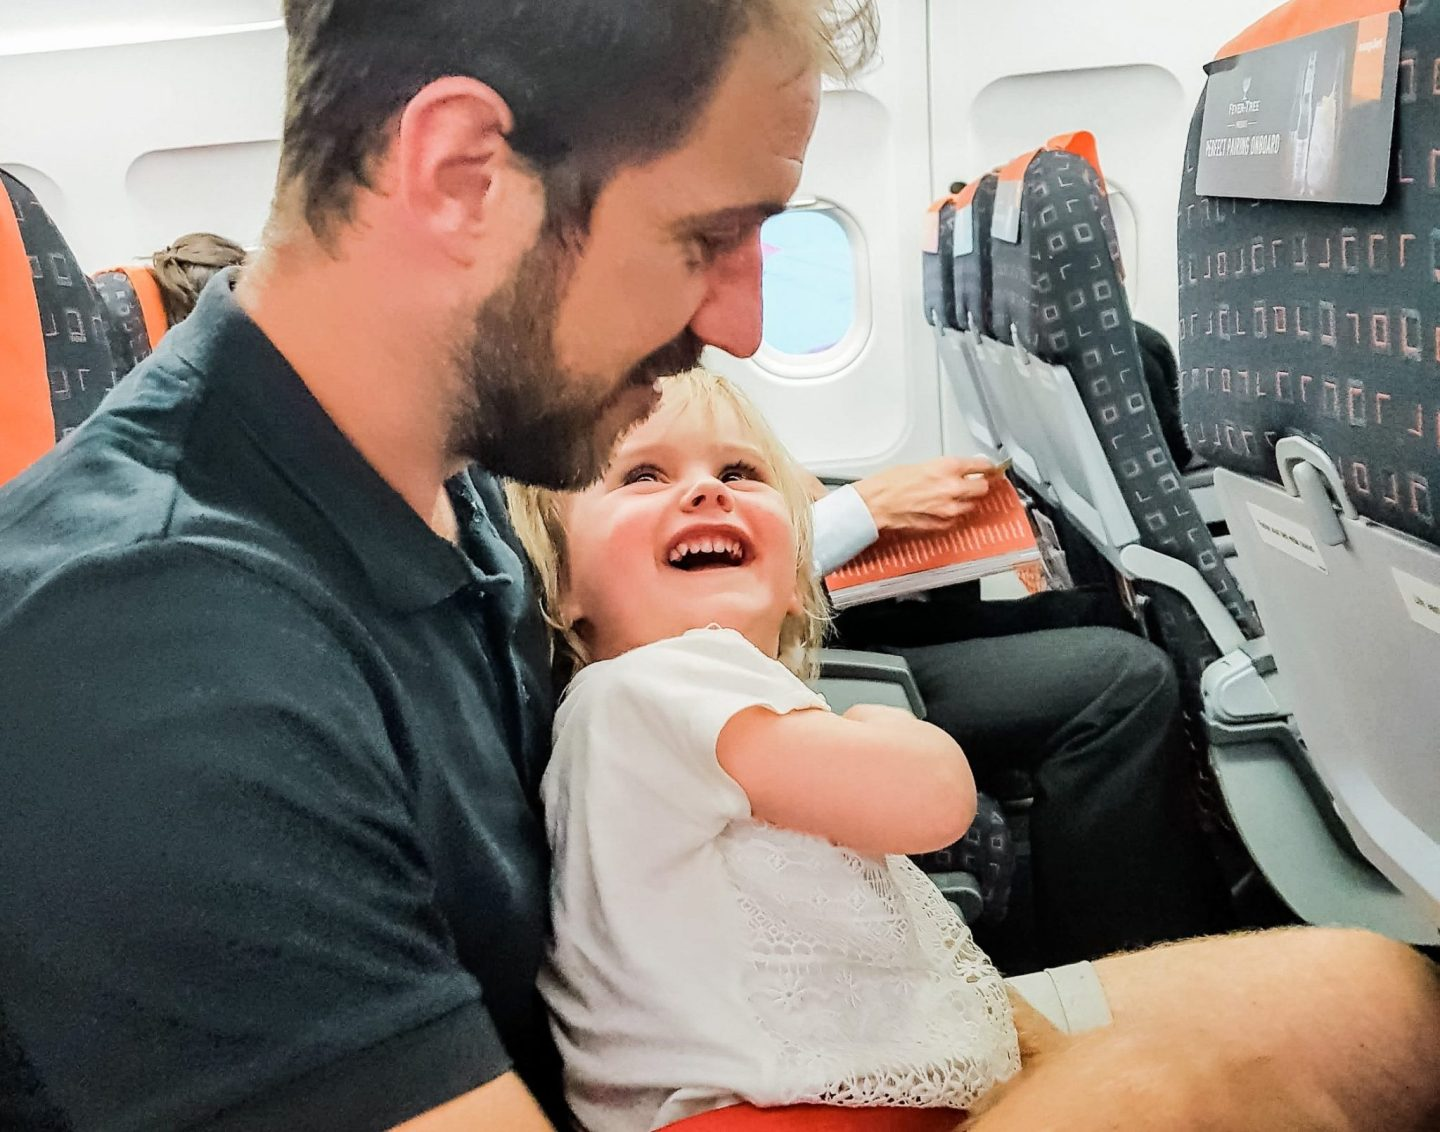 Flying with a toddler | The Halcyon Years